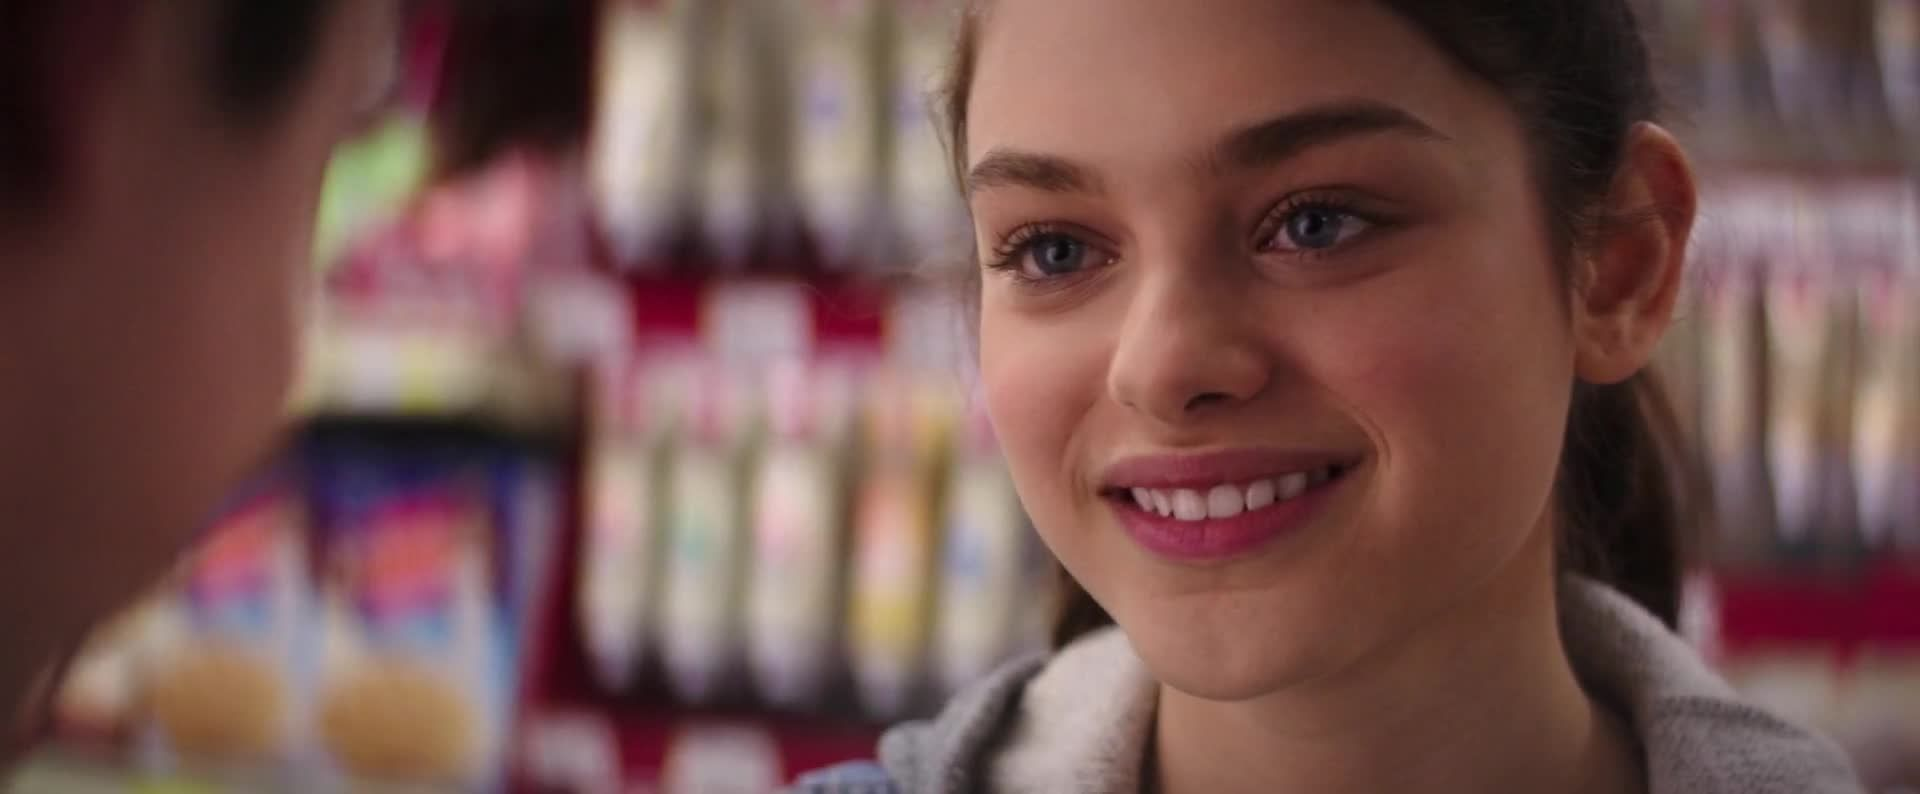 Sad quotes about bullying - Odeya Rush In The Film Goosebumps 2015 Goosebumps